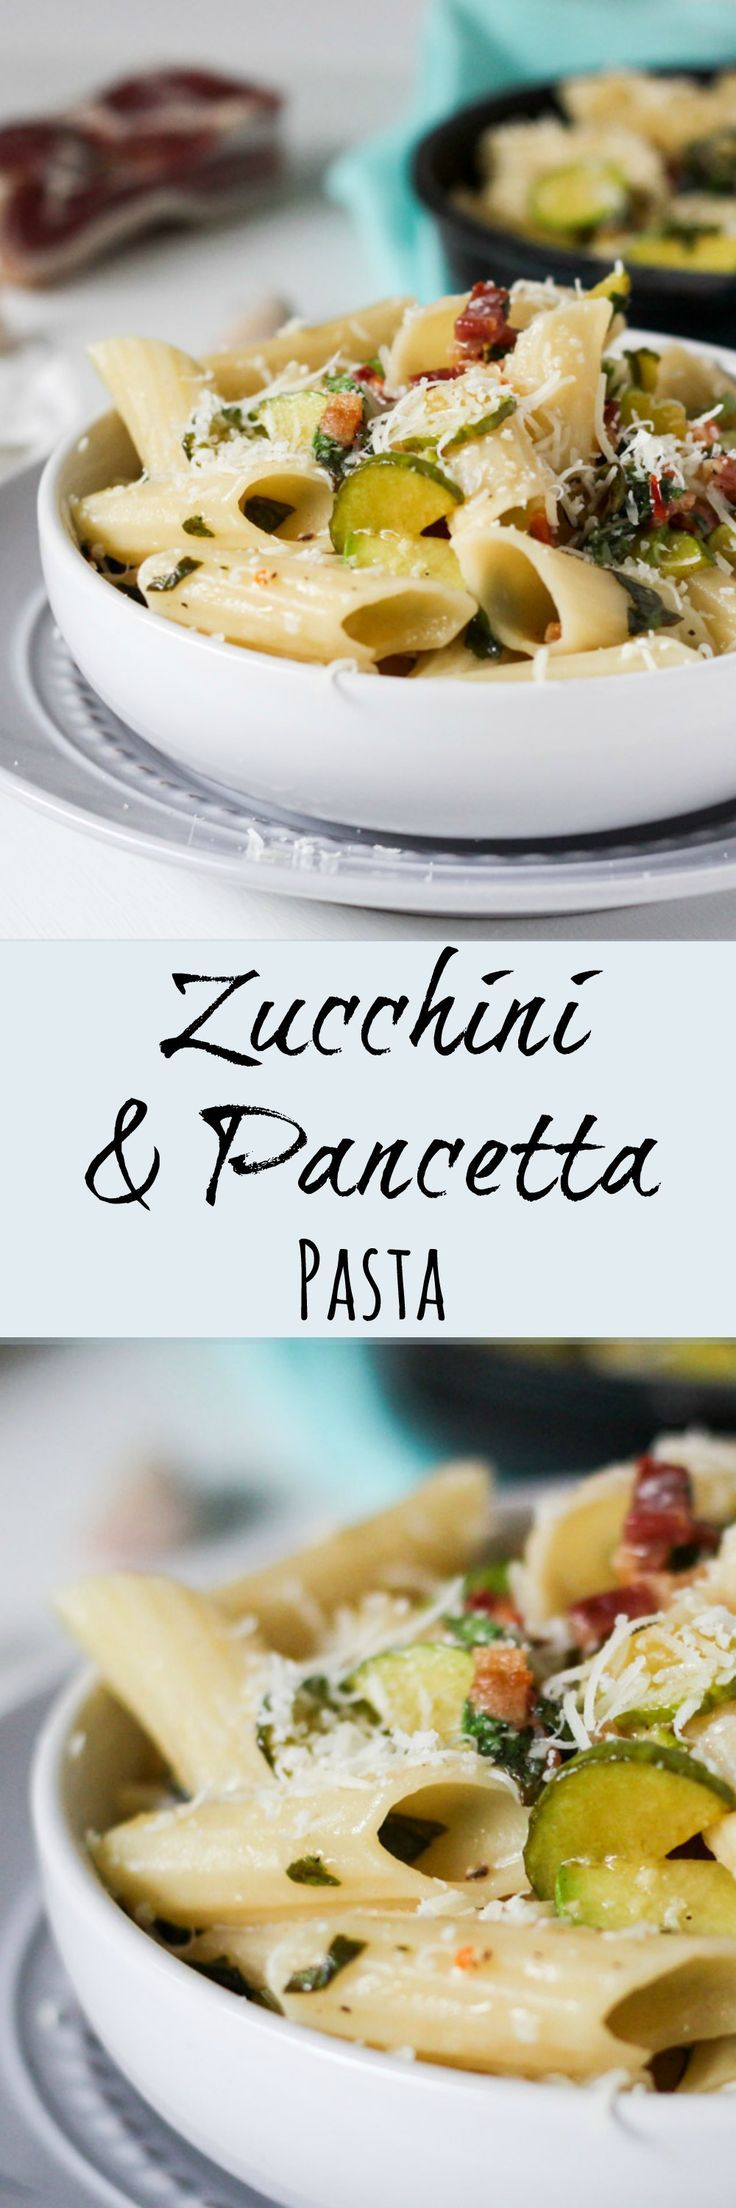 Zucchini & Pancetta Pasta.  A great way to use up a zucchini glut.